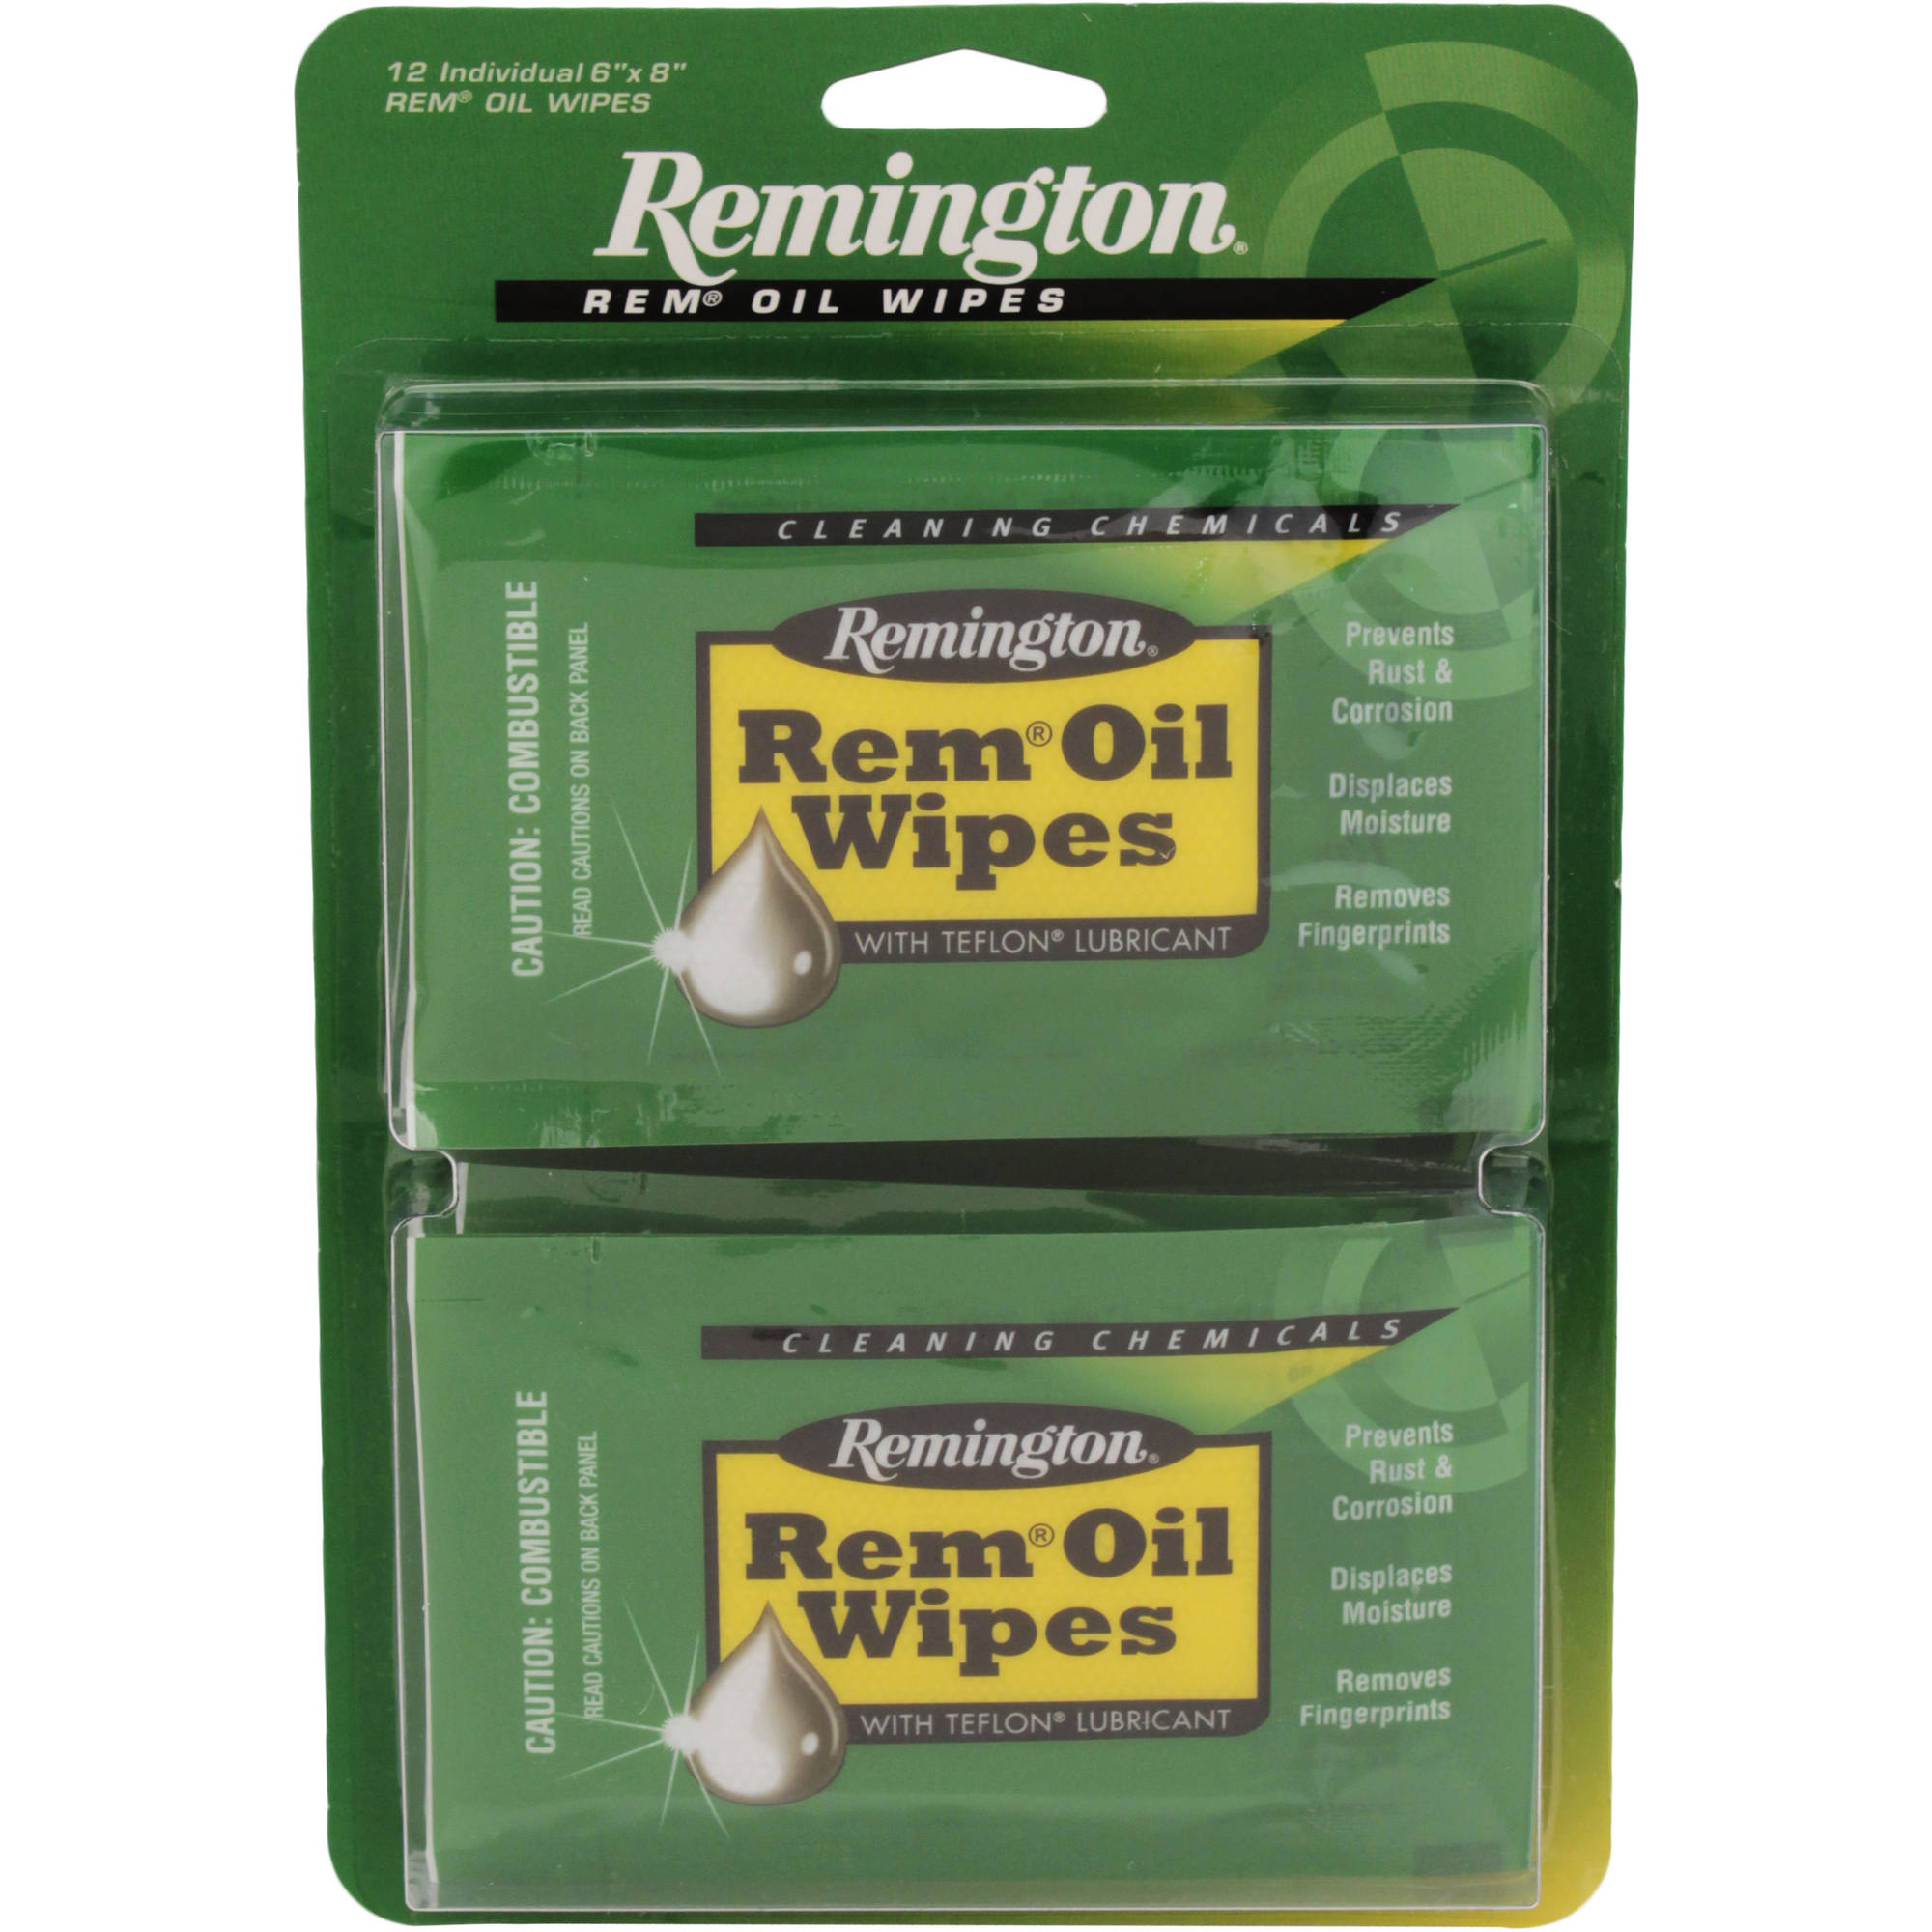 "Remington Accessories Rem Oil 6"" x 8"" Wipes, 12 Count"